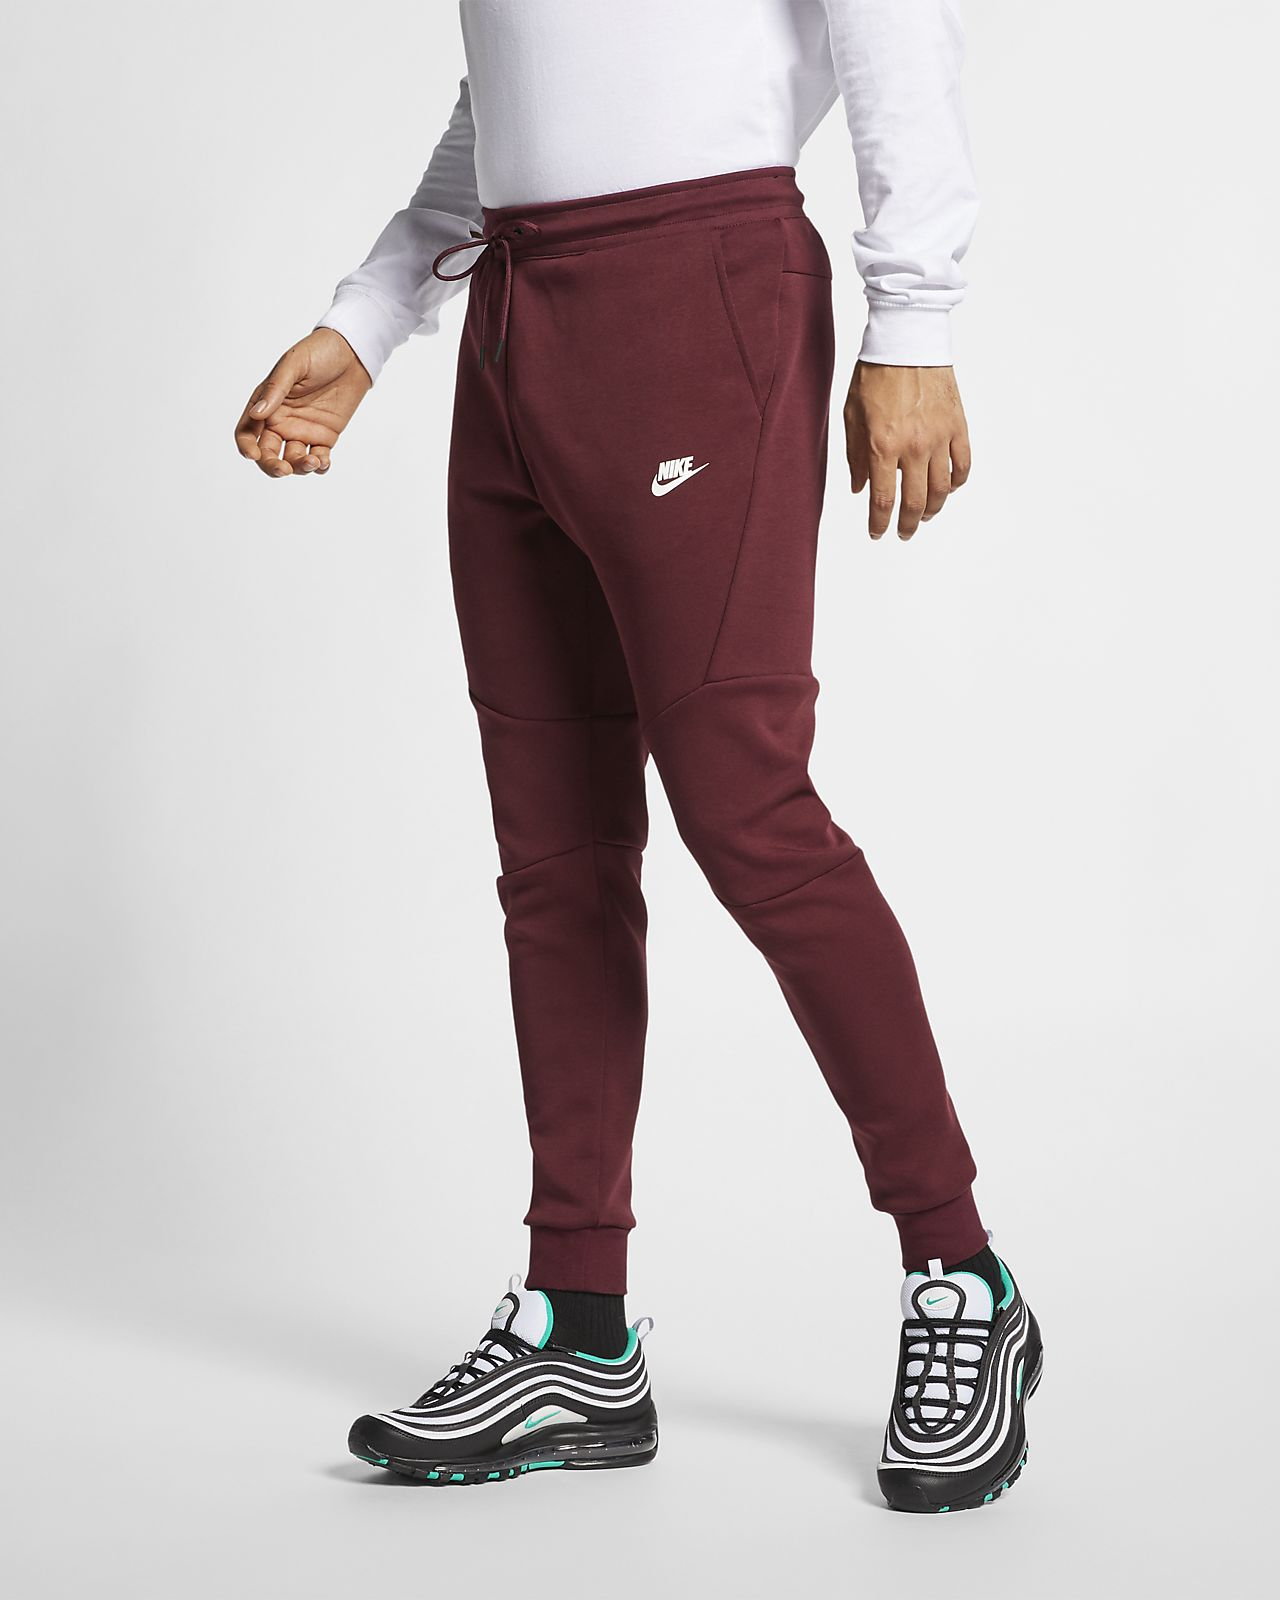 promo code b9466 60648 ... Nike Sportswear Tech Fleece Men s Joggers